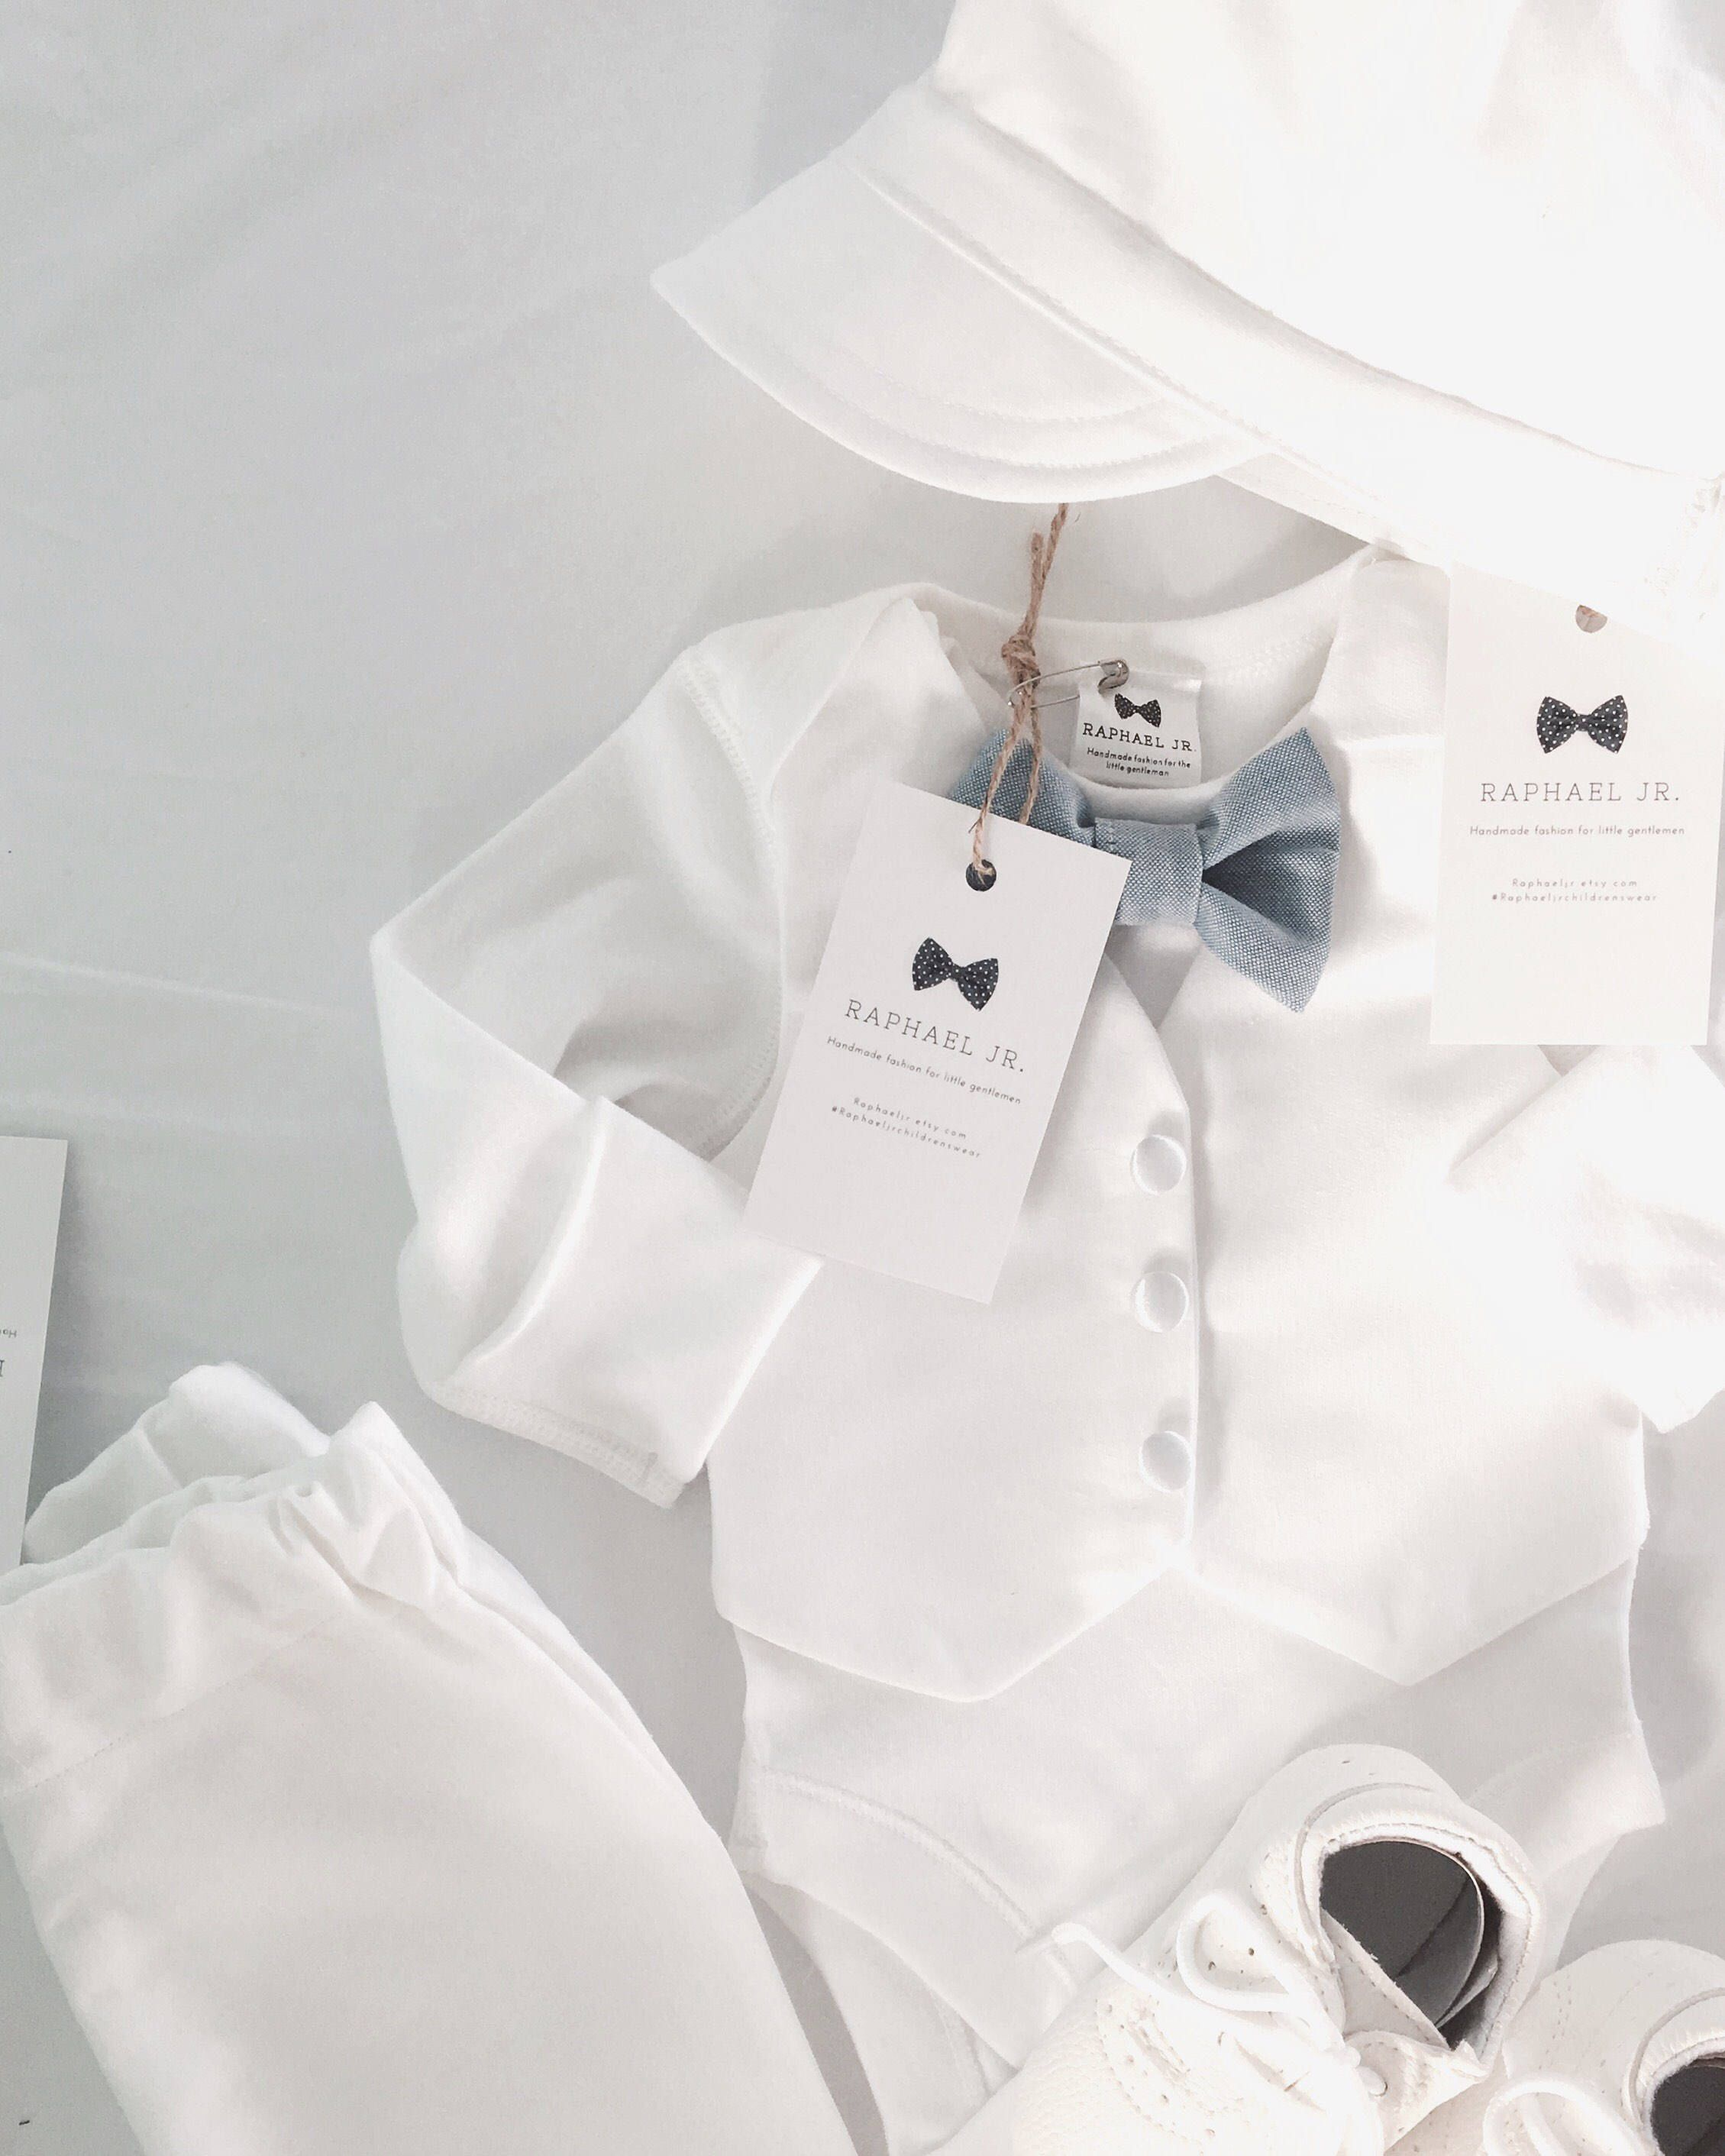 Baby boy Baptism White vest onesie outfit with matching white blue